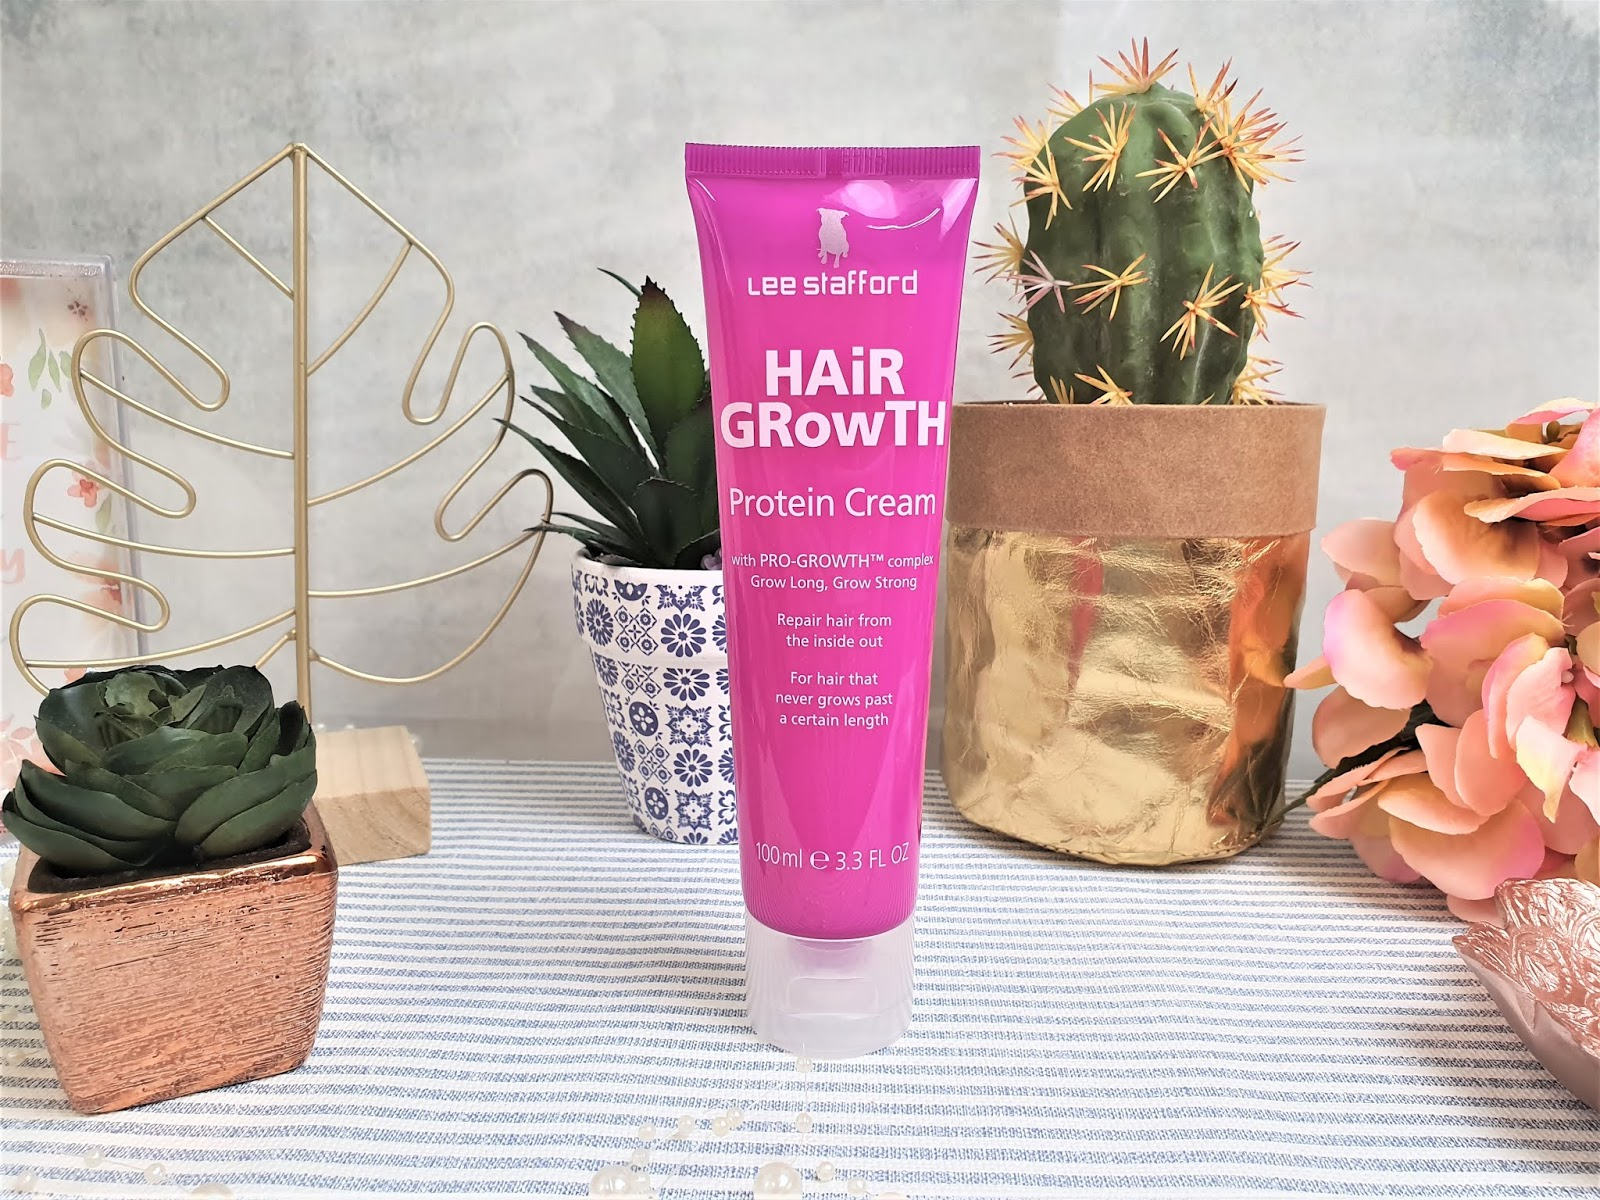 Kathryn S Loves Lee Stafford Hair Growth Protein Cream Review